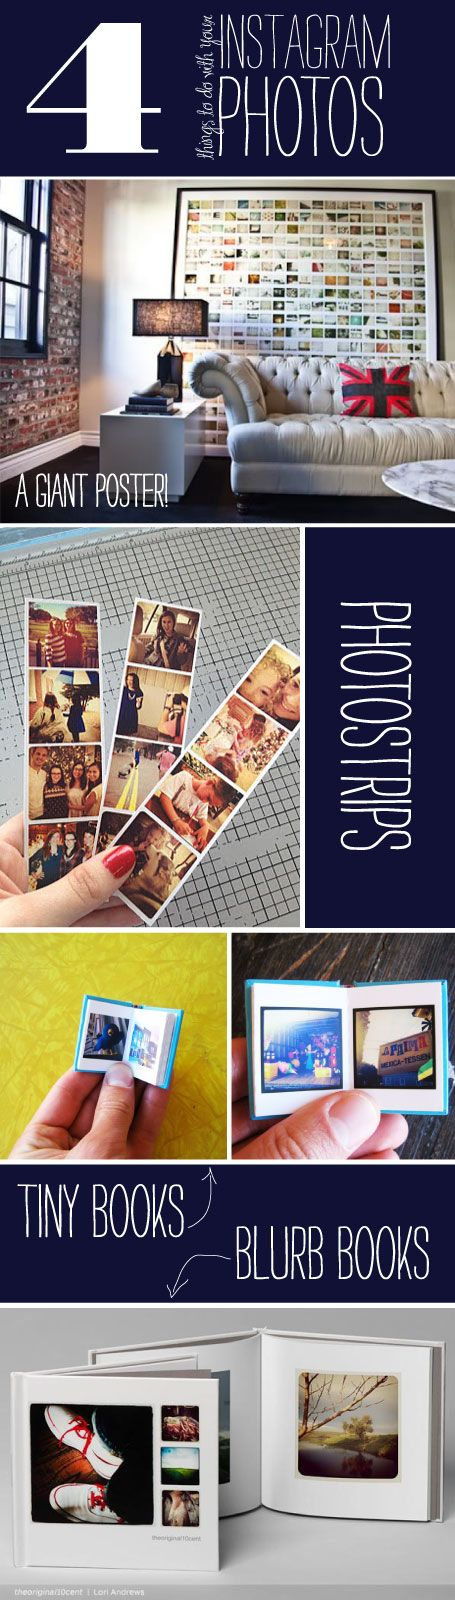 ideas on how to display instagram pics from wiley valentine